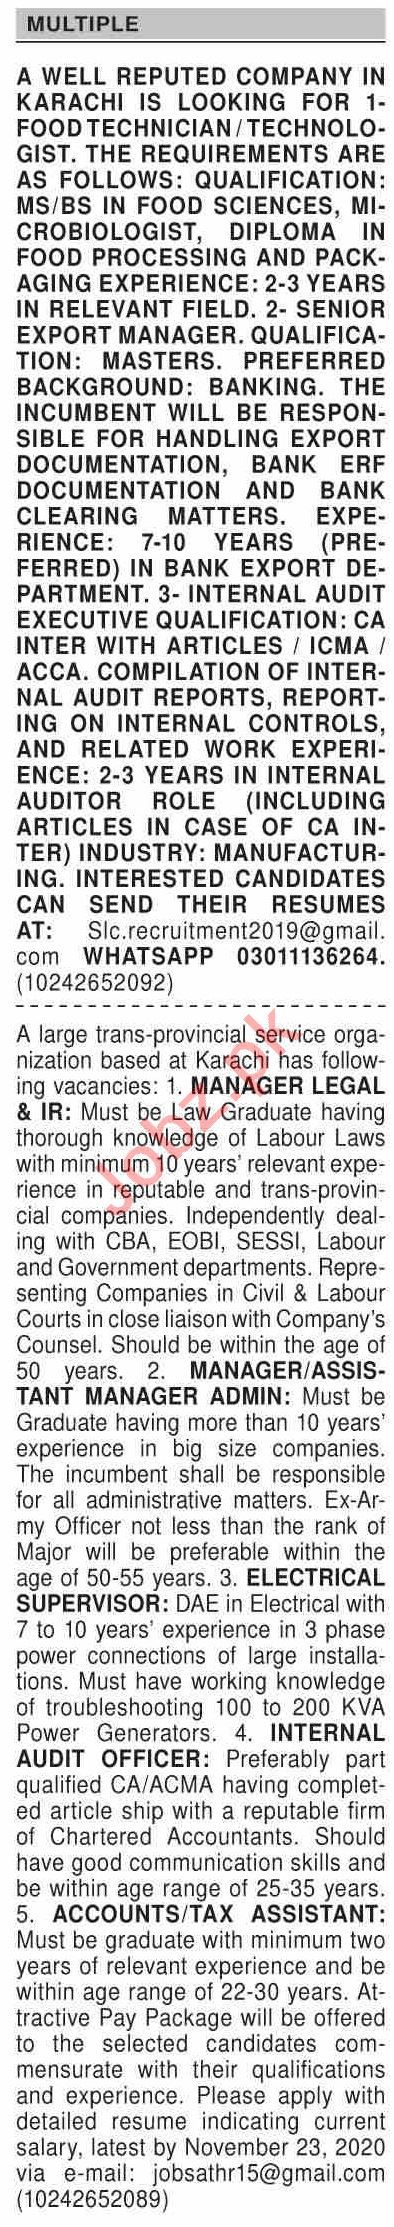 Dawn Sunday Classified Ads 15 Nov 2020 for Multiple Staff